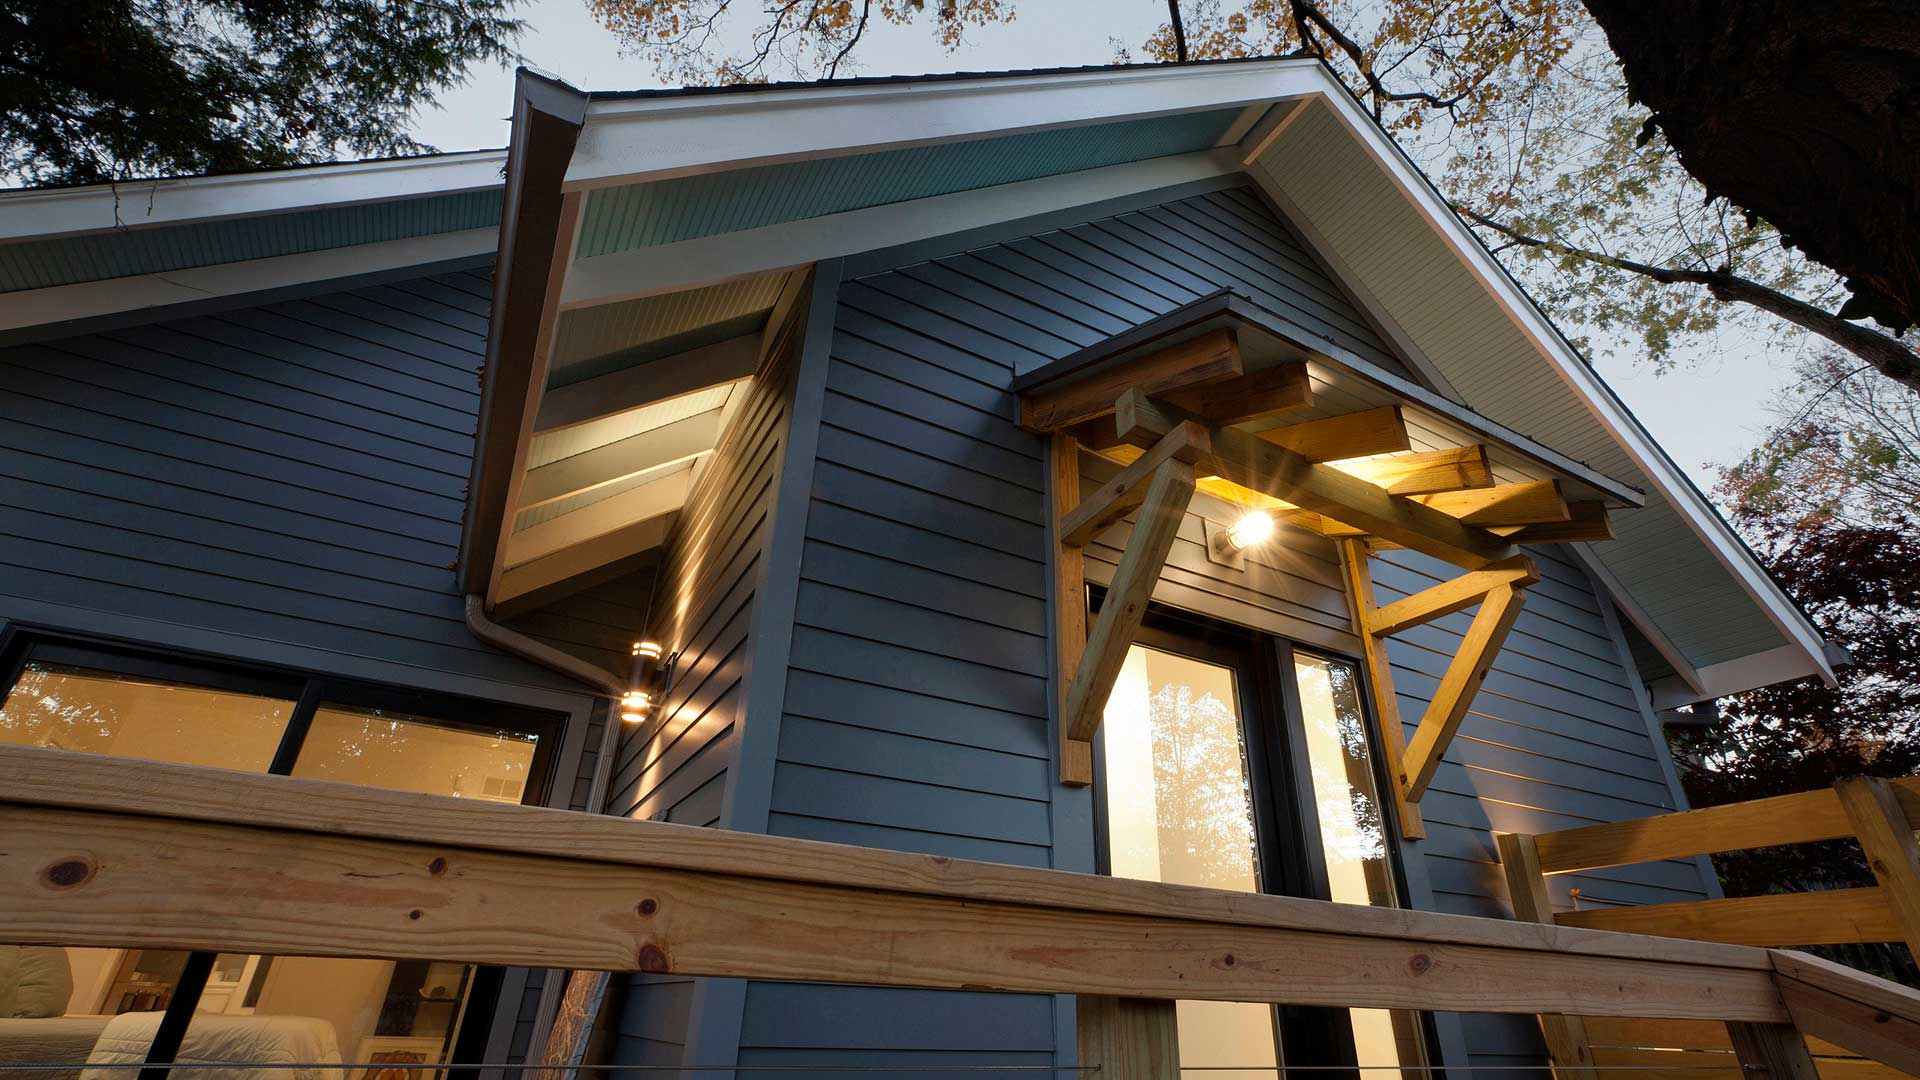 Both Master Bedroom and Mudroom open to the new back porch with extended roof overhangs, tapered exposed rafter tails, and bracketed shed porch roof in this newly reconstructed Broad Ripple Modern Craftsman Dwelling on Carrollton Avenue - Indianapolis, Indiana